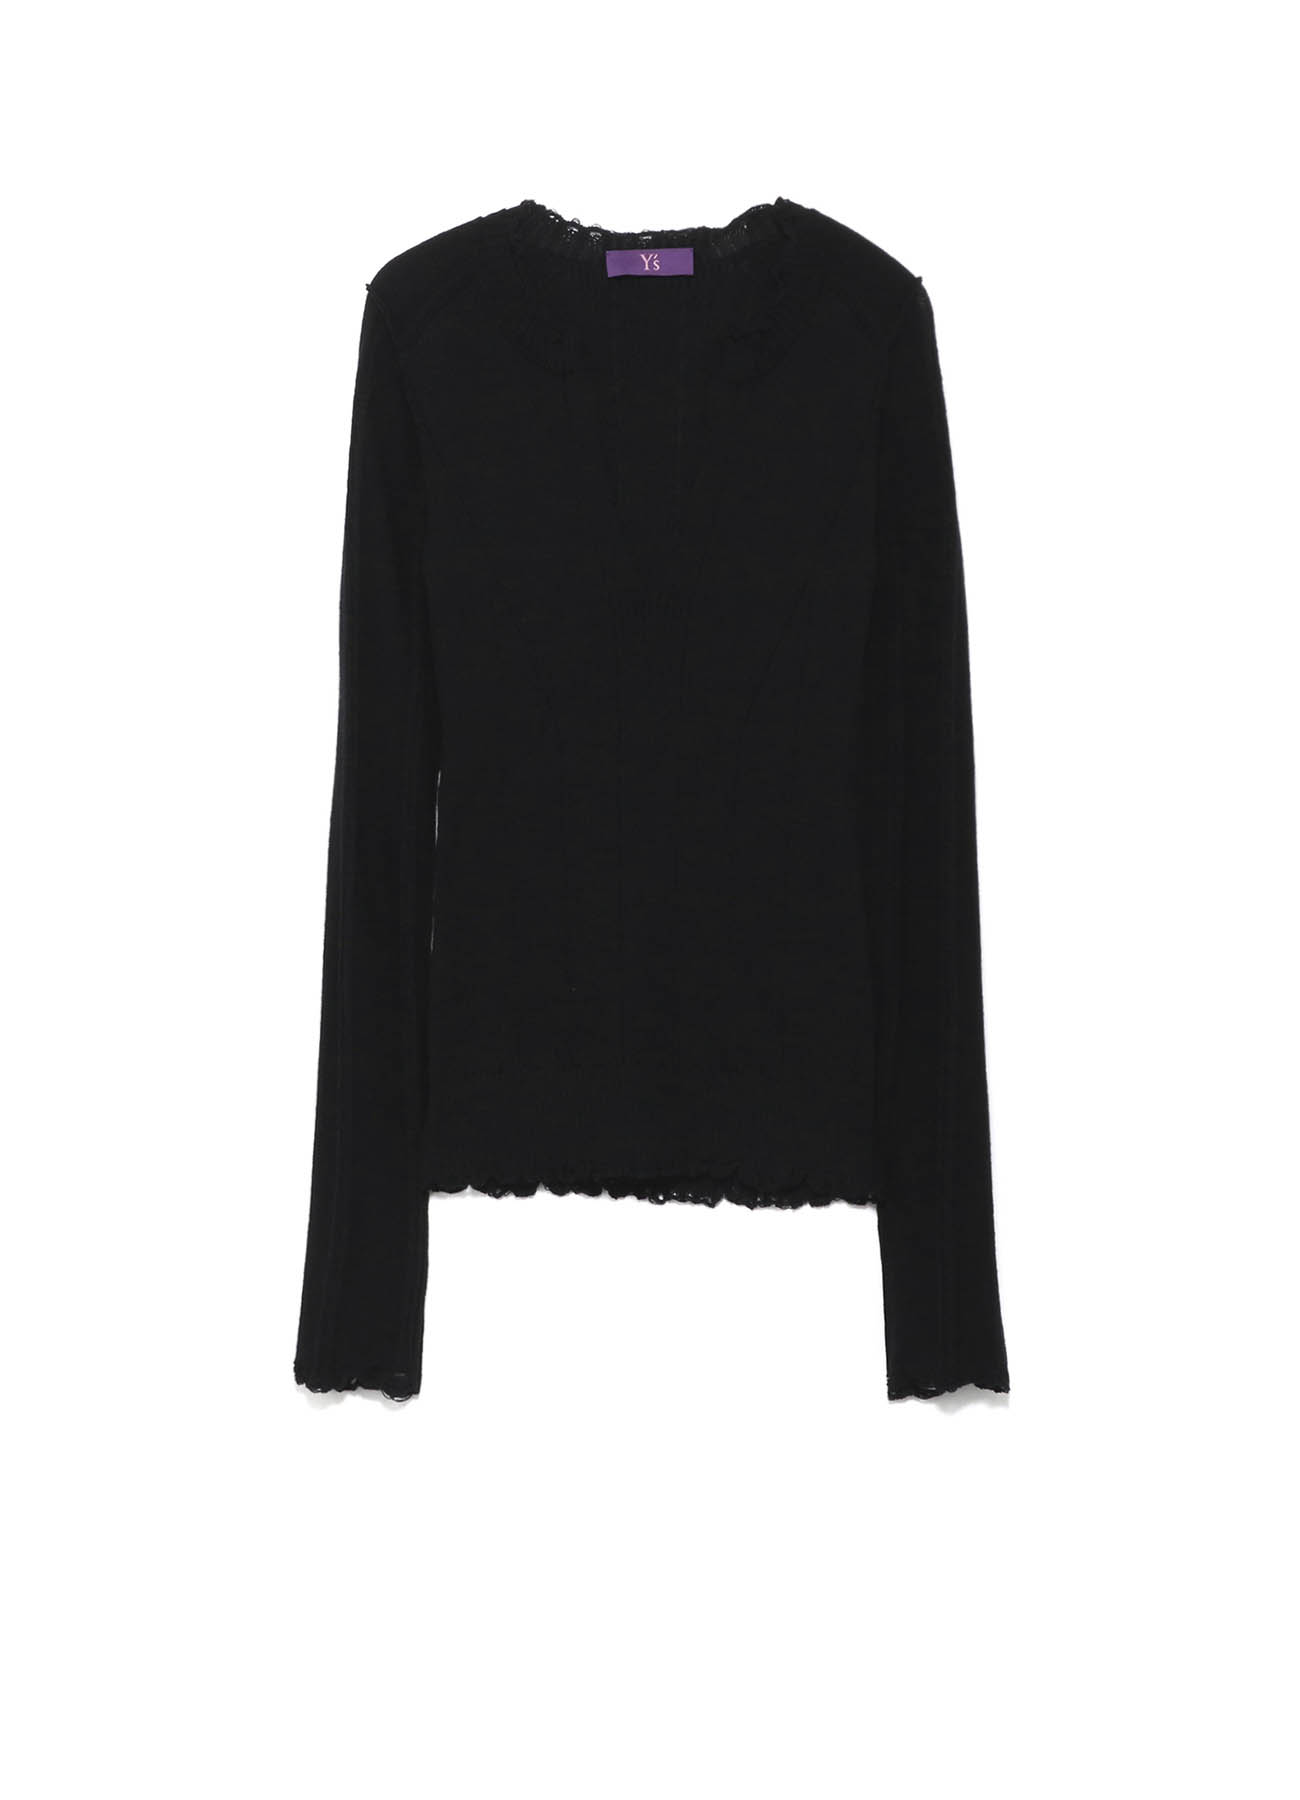 Y'sPINK AUTHENTICO WOOL DAMAGED KNIT